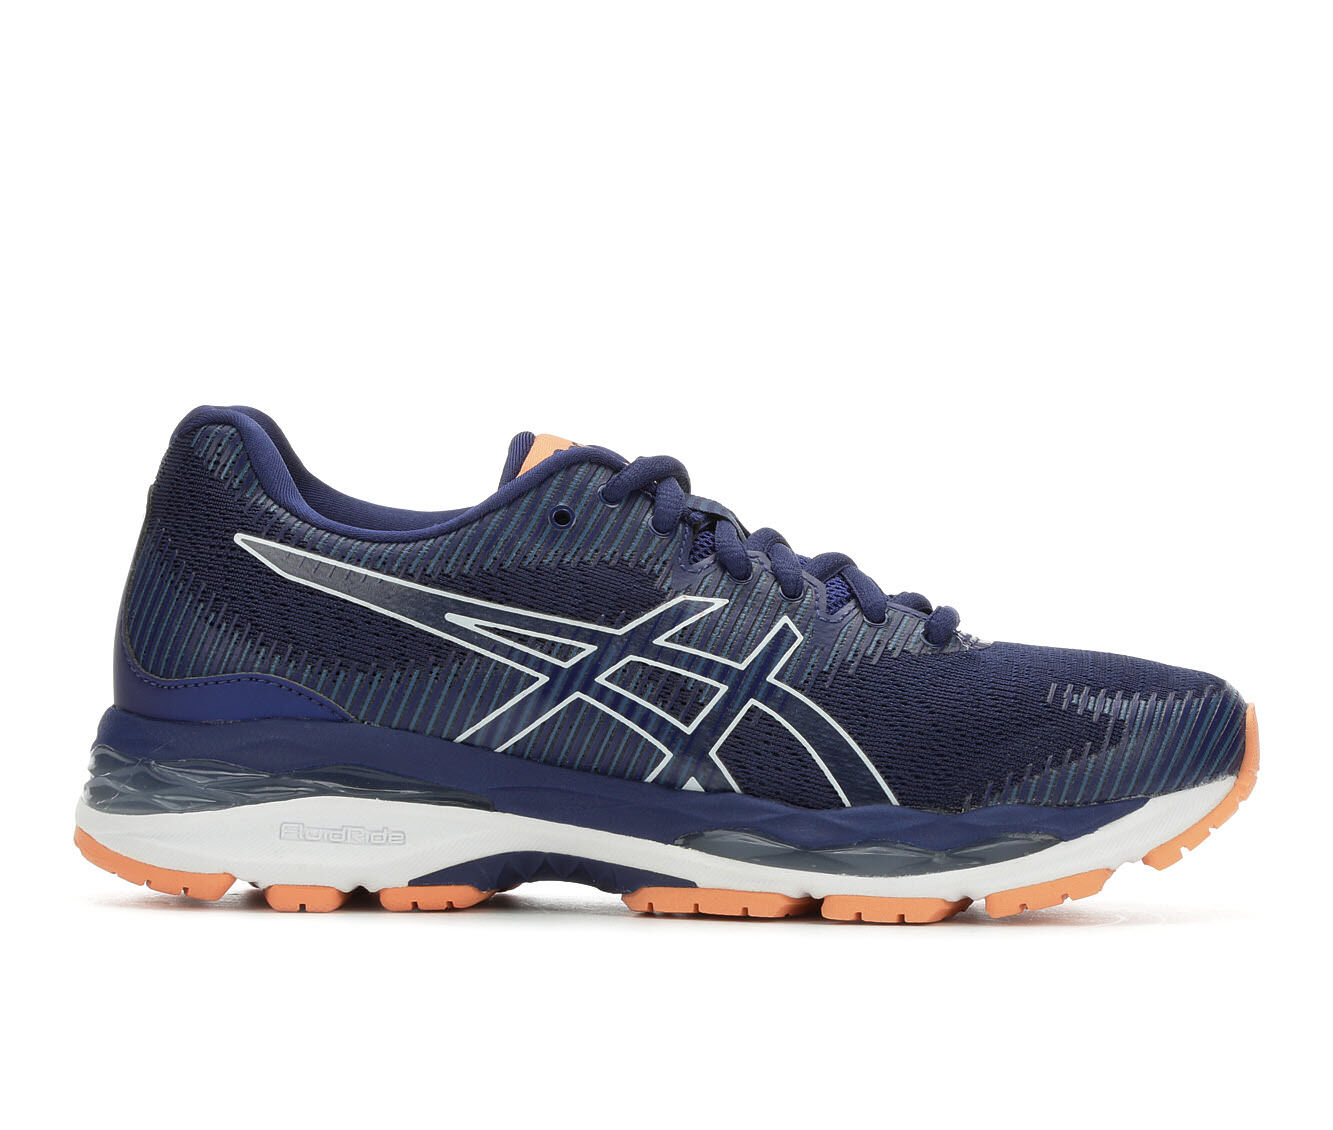 Asics Gel-ziruss 2 Womens Running Trainers 1012a014 Sneakers Shoes 001 Women's Shoes Athletic Shoes